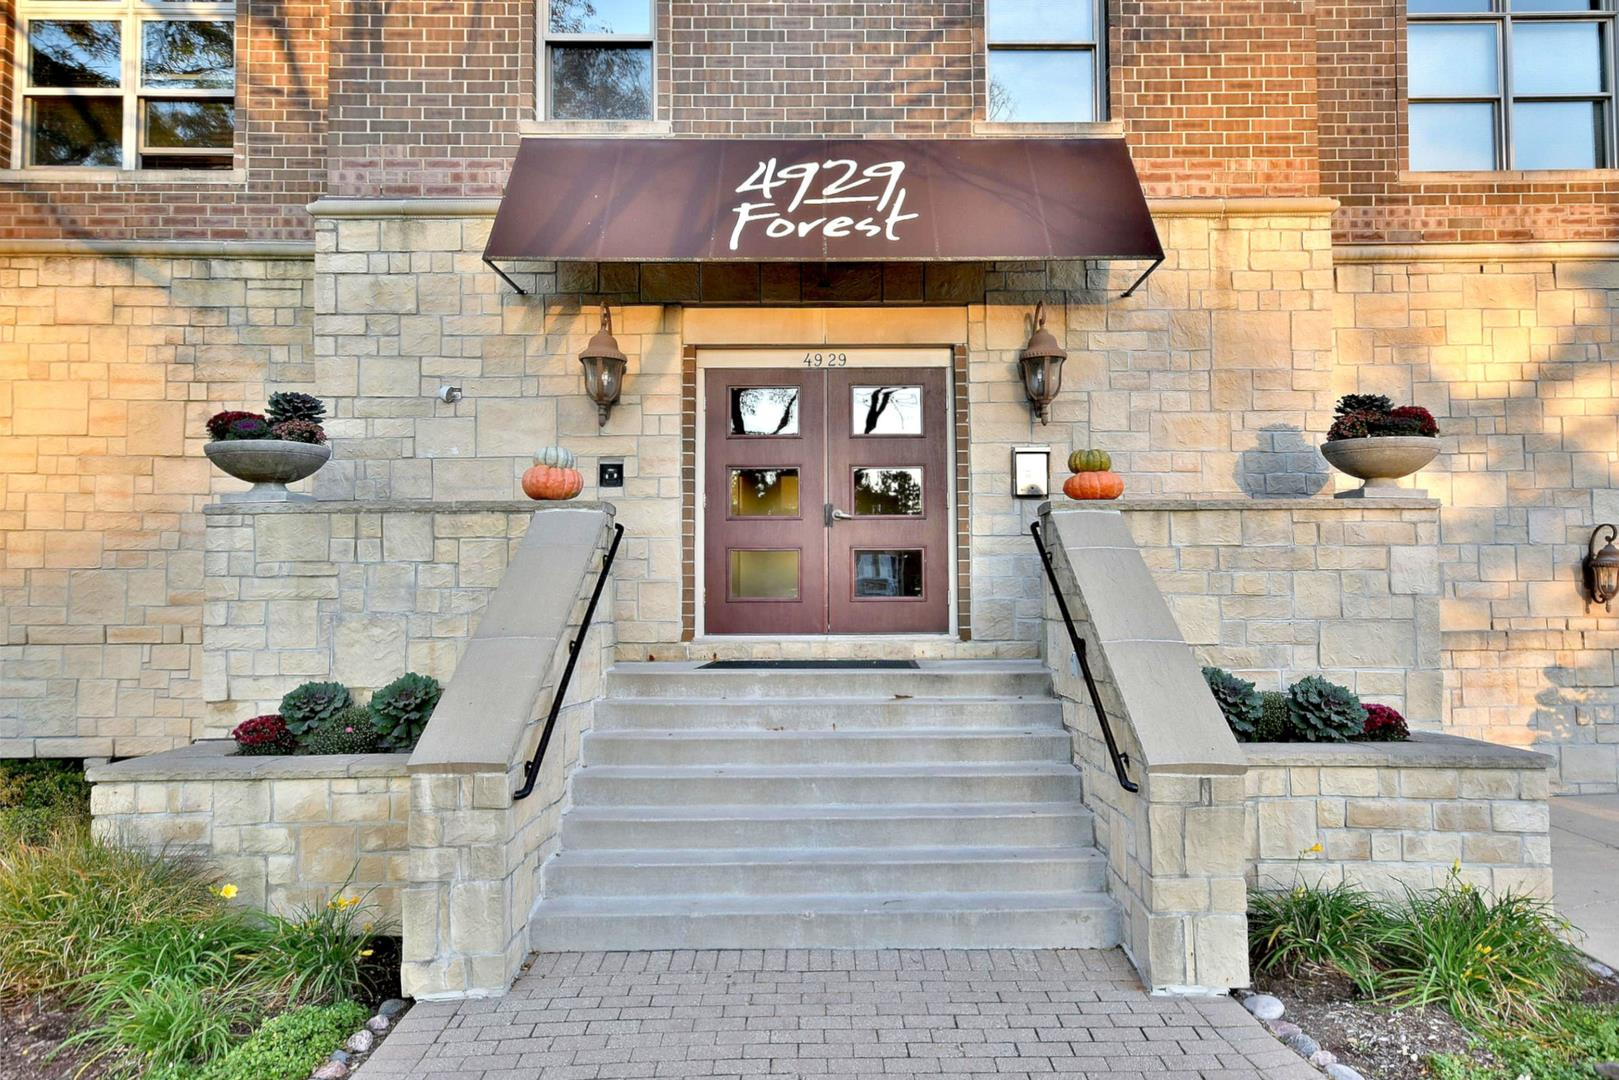 4929 FOREST Avenue #2F, Downers Grove, IL 60515 - #: 10858473